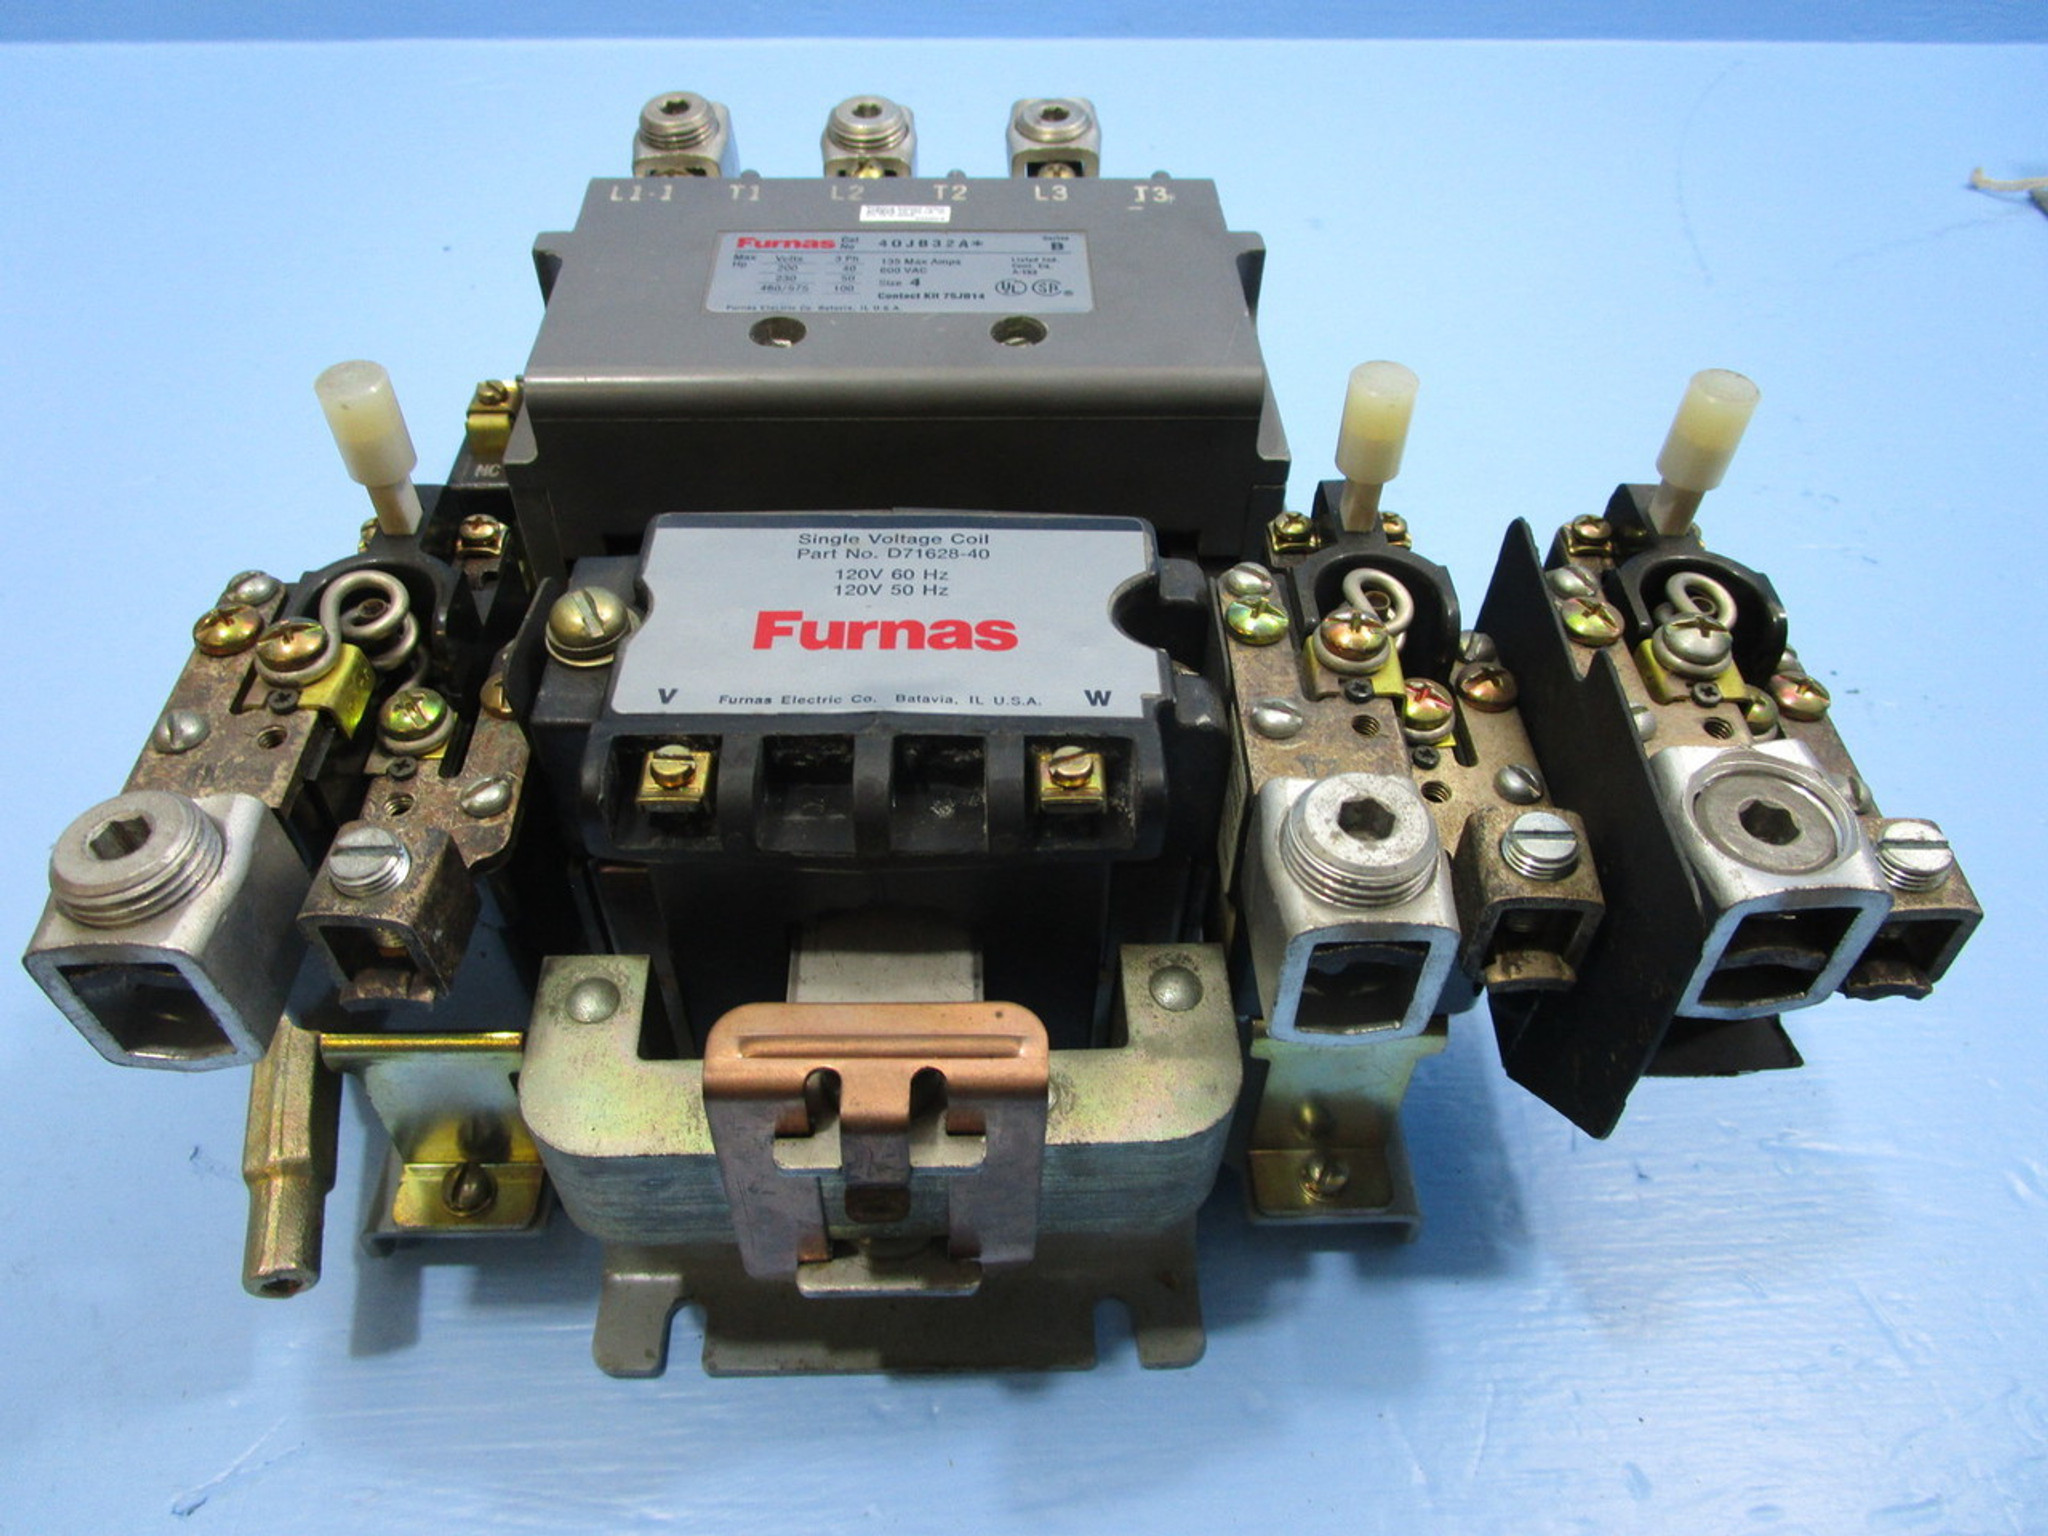 Furnas Contactors and Starters Are Grrrreat